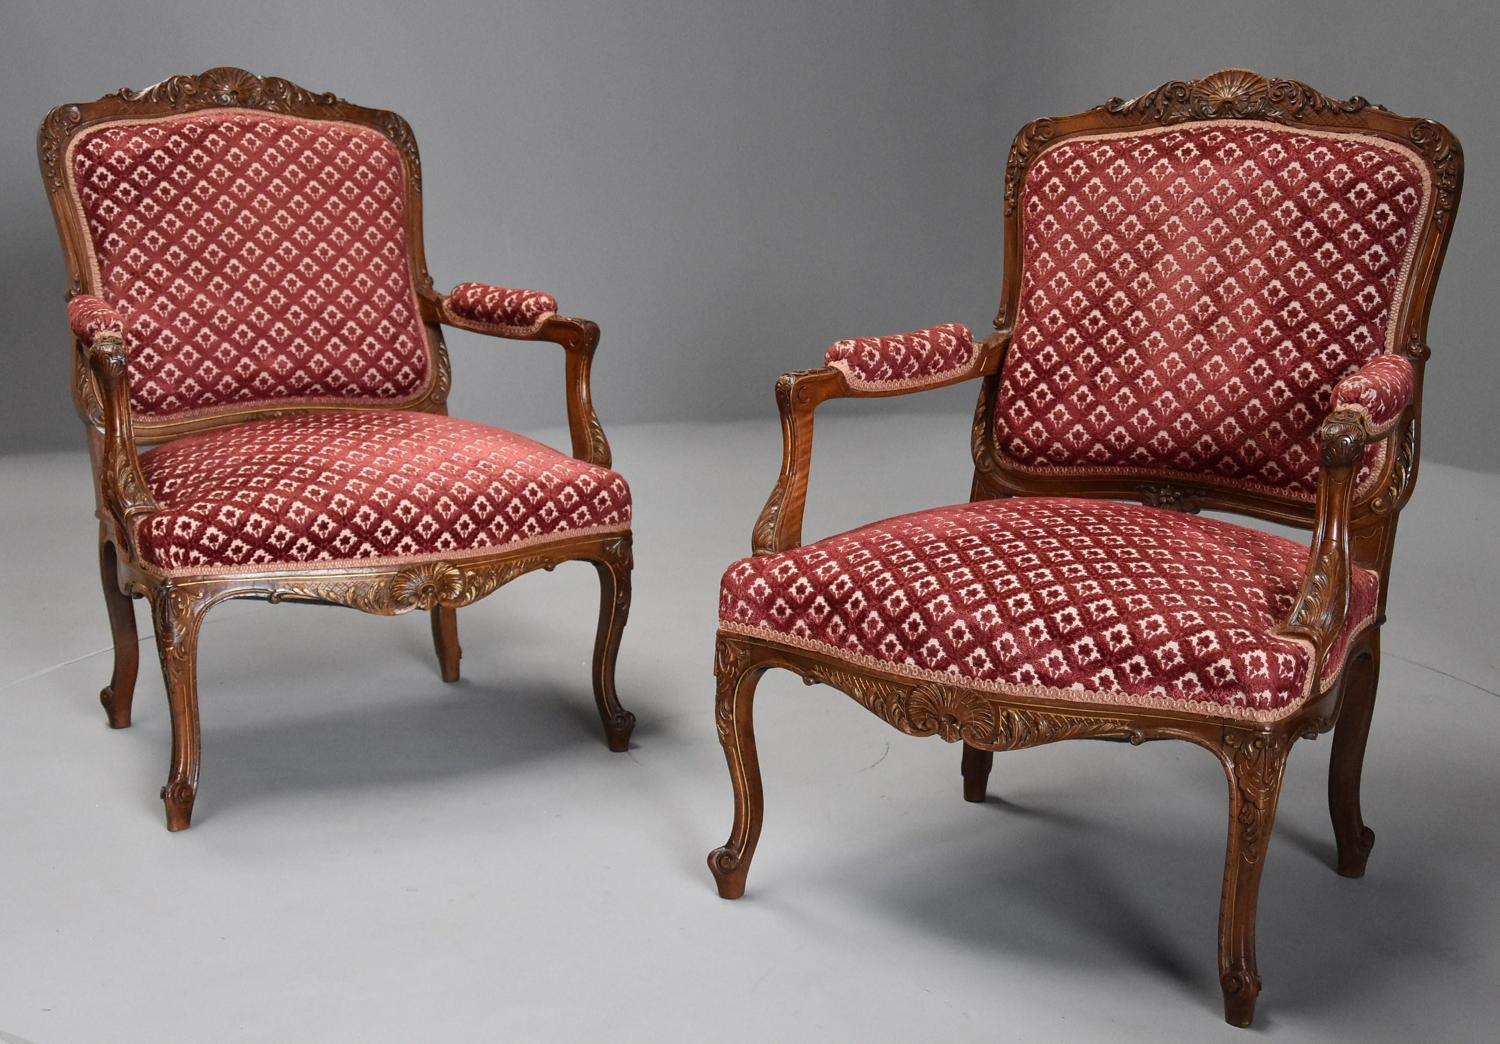 Pair of 19thc French walnut fauteuils in the Louis XV style